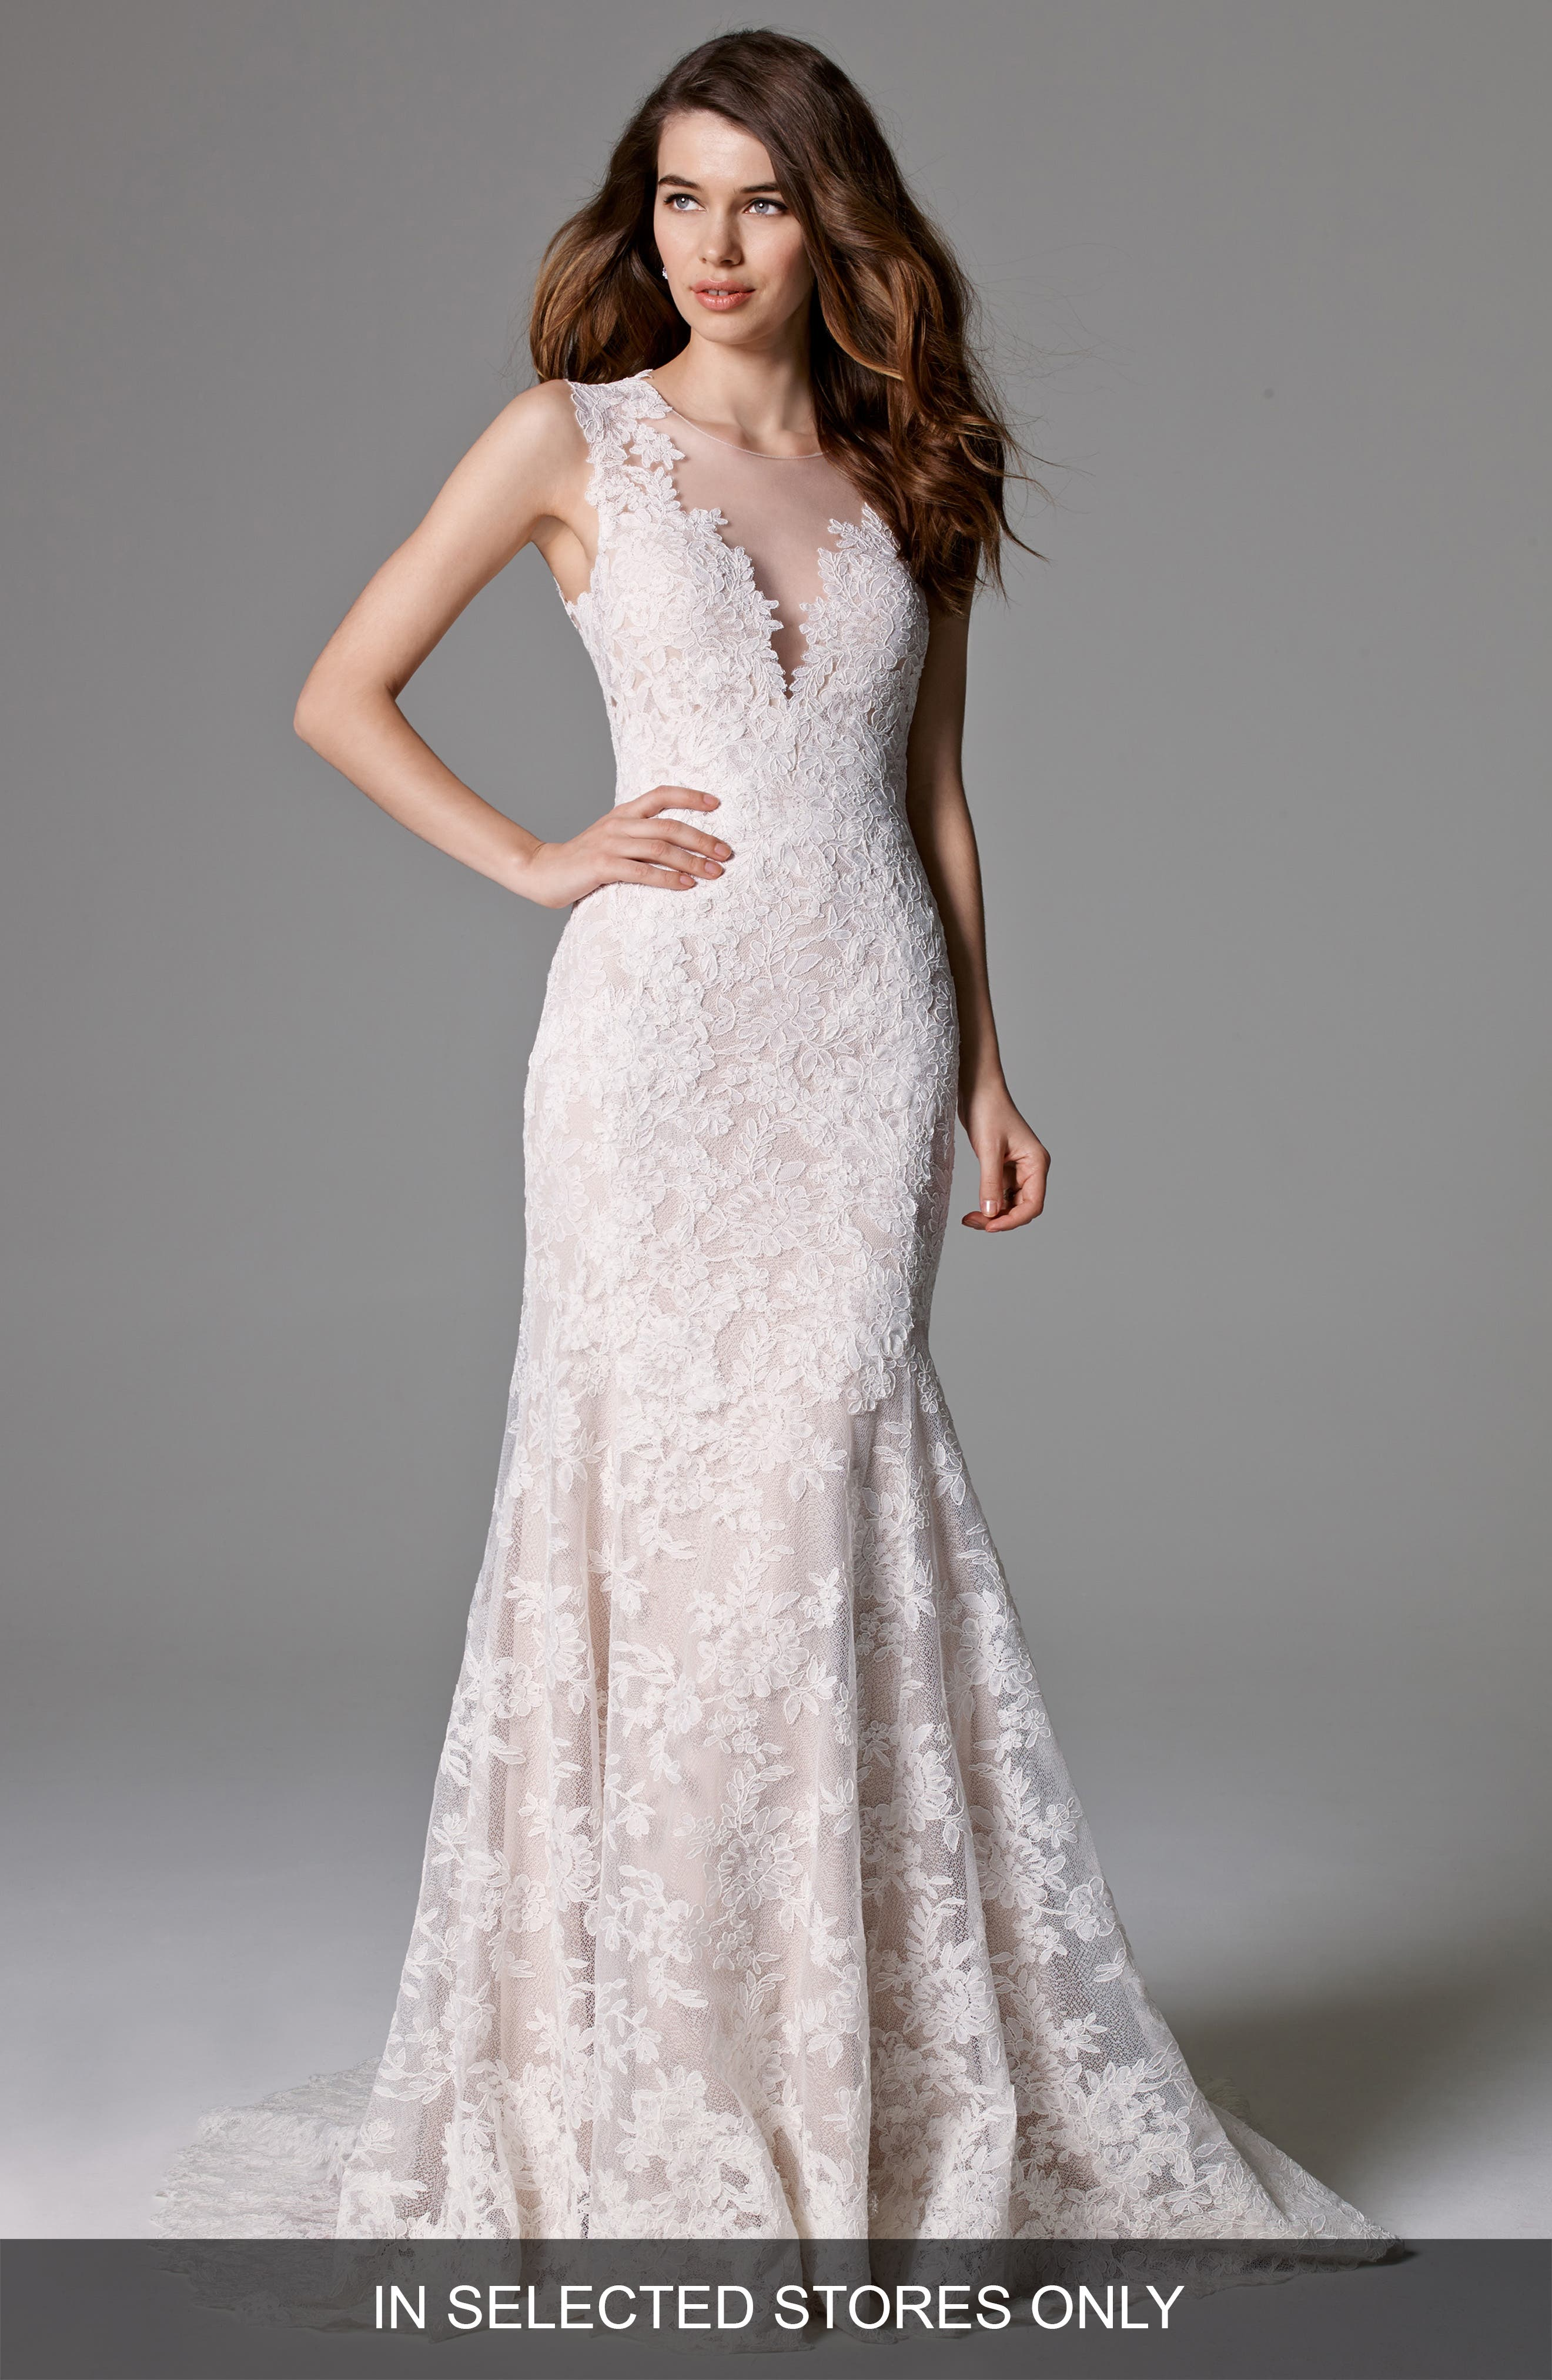 Ashland Lace Mermaid Gown,                             Main thumbnail 1, color,                             IVORY